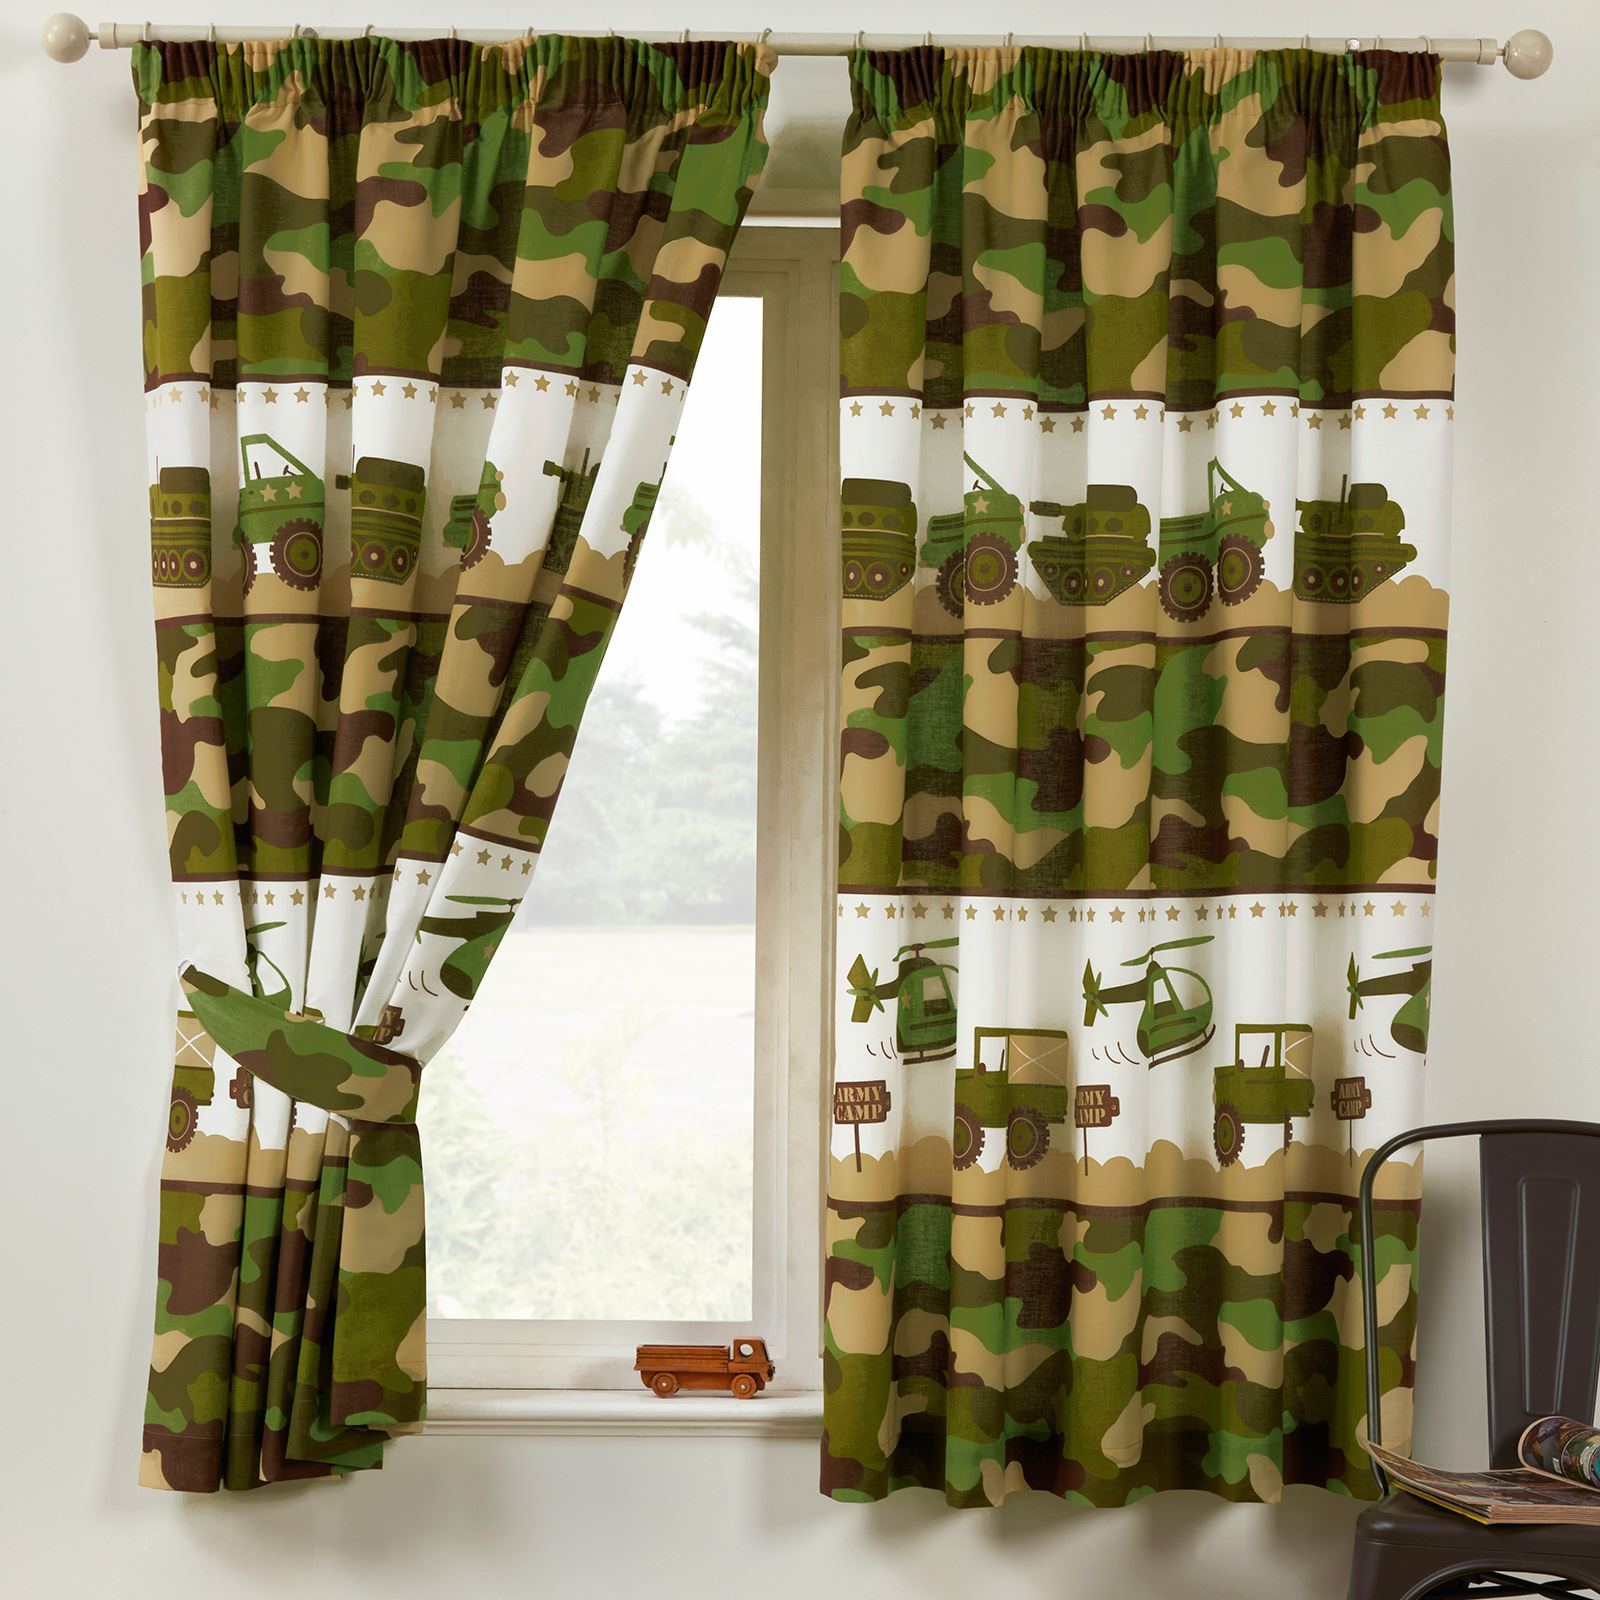 """Dinosaur World 66 X 54 Lined Curtains Tie Backs: ARMY CAMP CAMO 66"""" X 54"""" LINED CURTAINS NEW CAMOUFLAGE"""